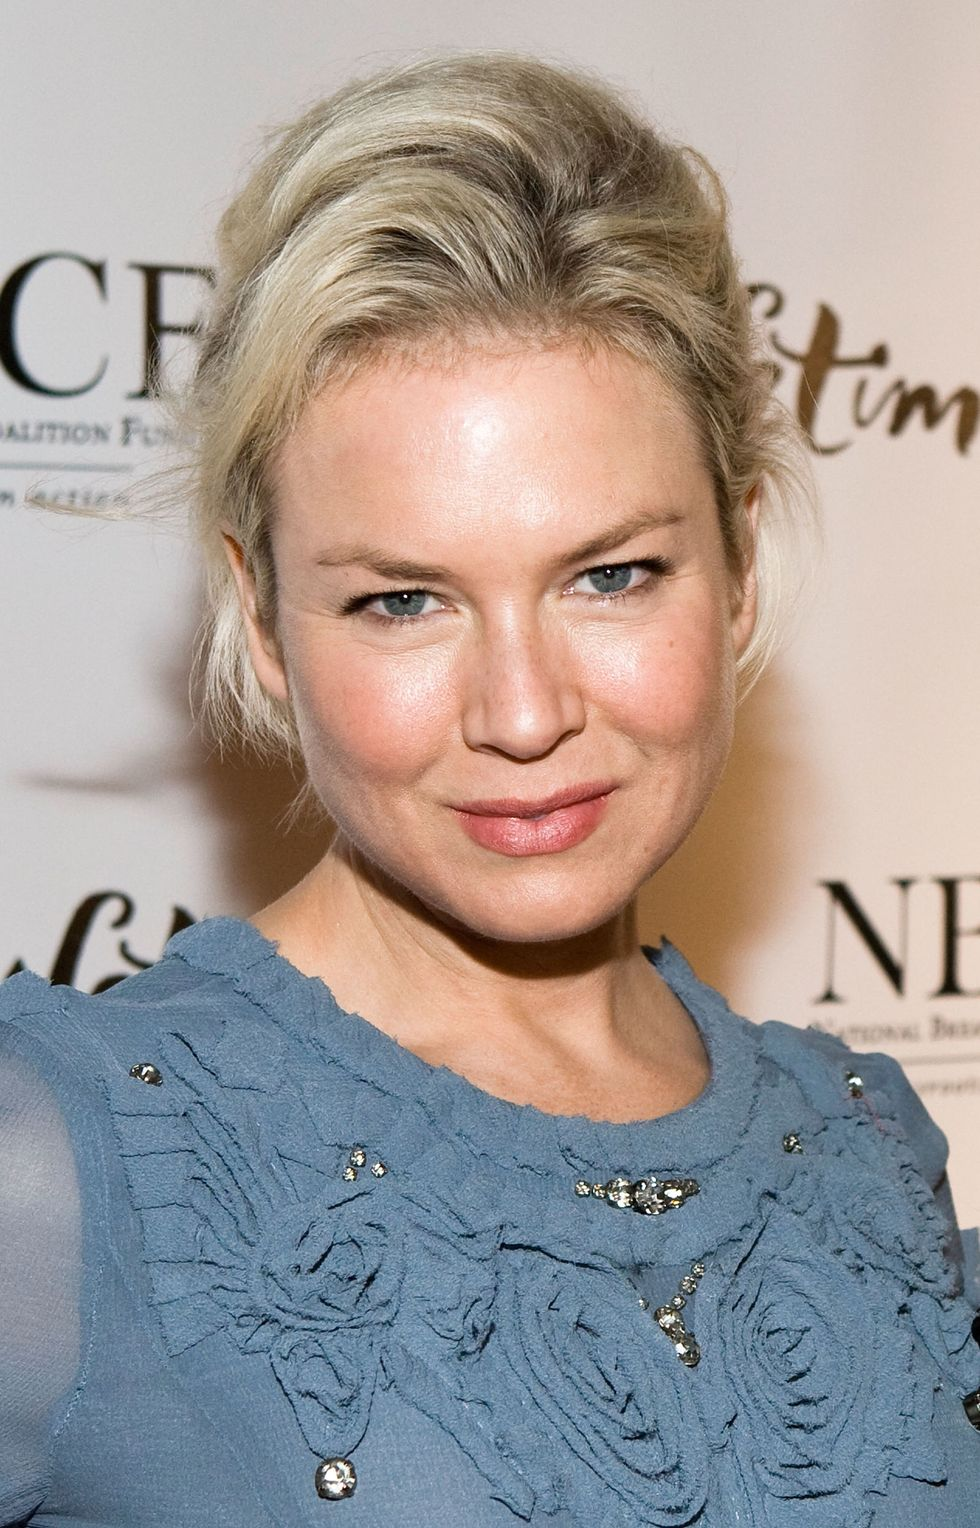 """Renée Zellweger Zellweger kept it short and sweet when talking about not wanting kids in an interview with the London Times in 2008, three years after her four-month marriage to country crooner Kenny Chesney ended: """"Motherhood has never been an ambition. I don't think like that."""""""